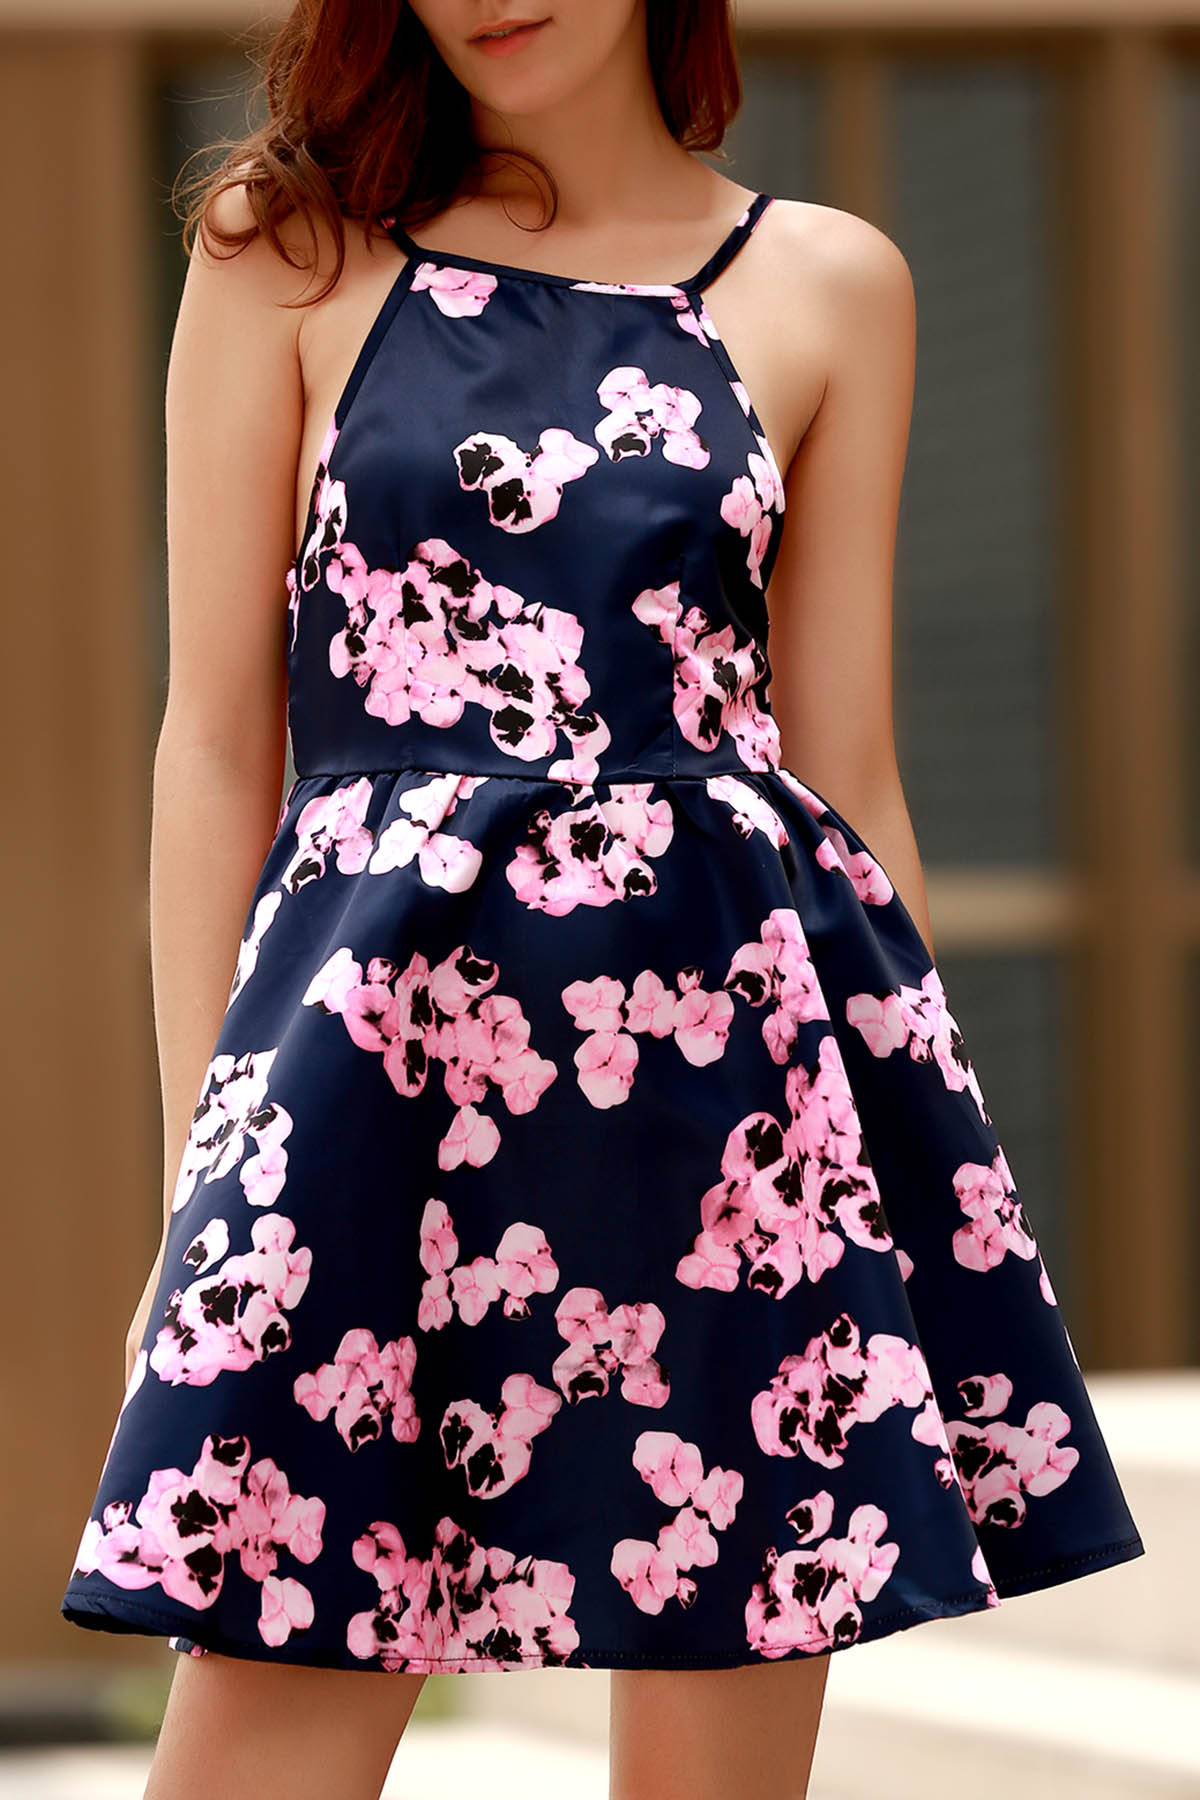 Spaghetti Straps Open Back Floral Print Dress